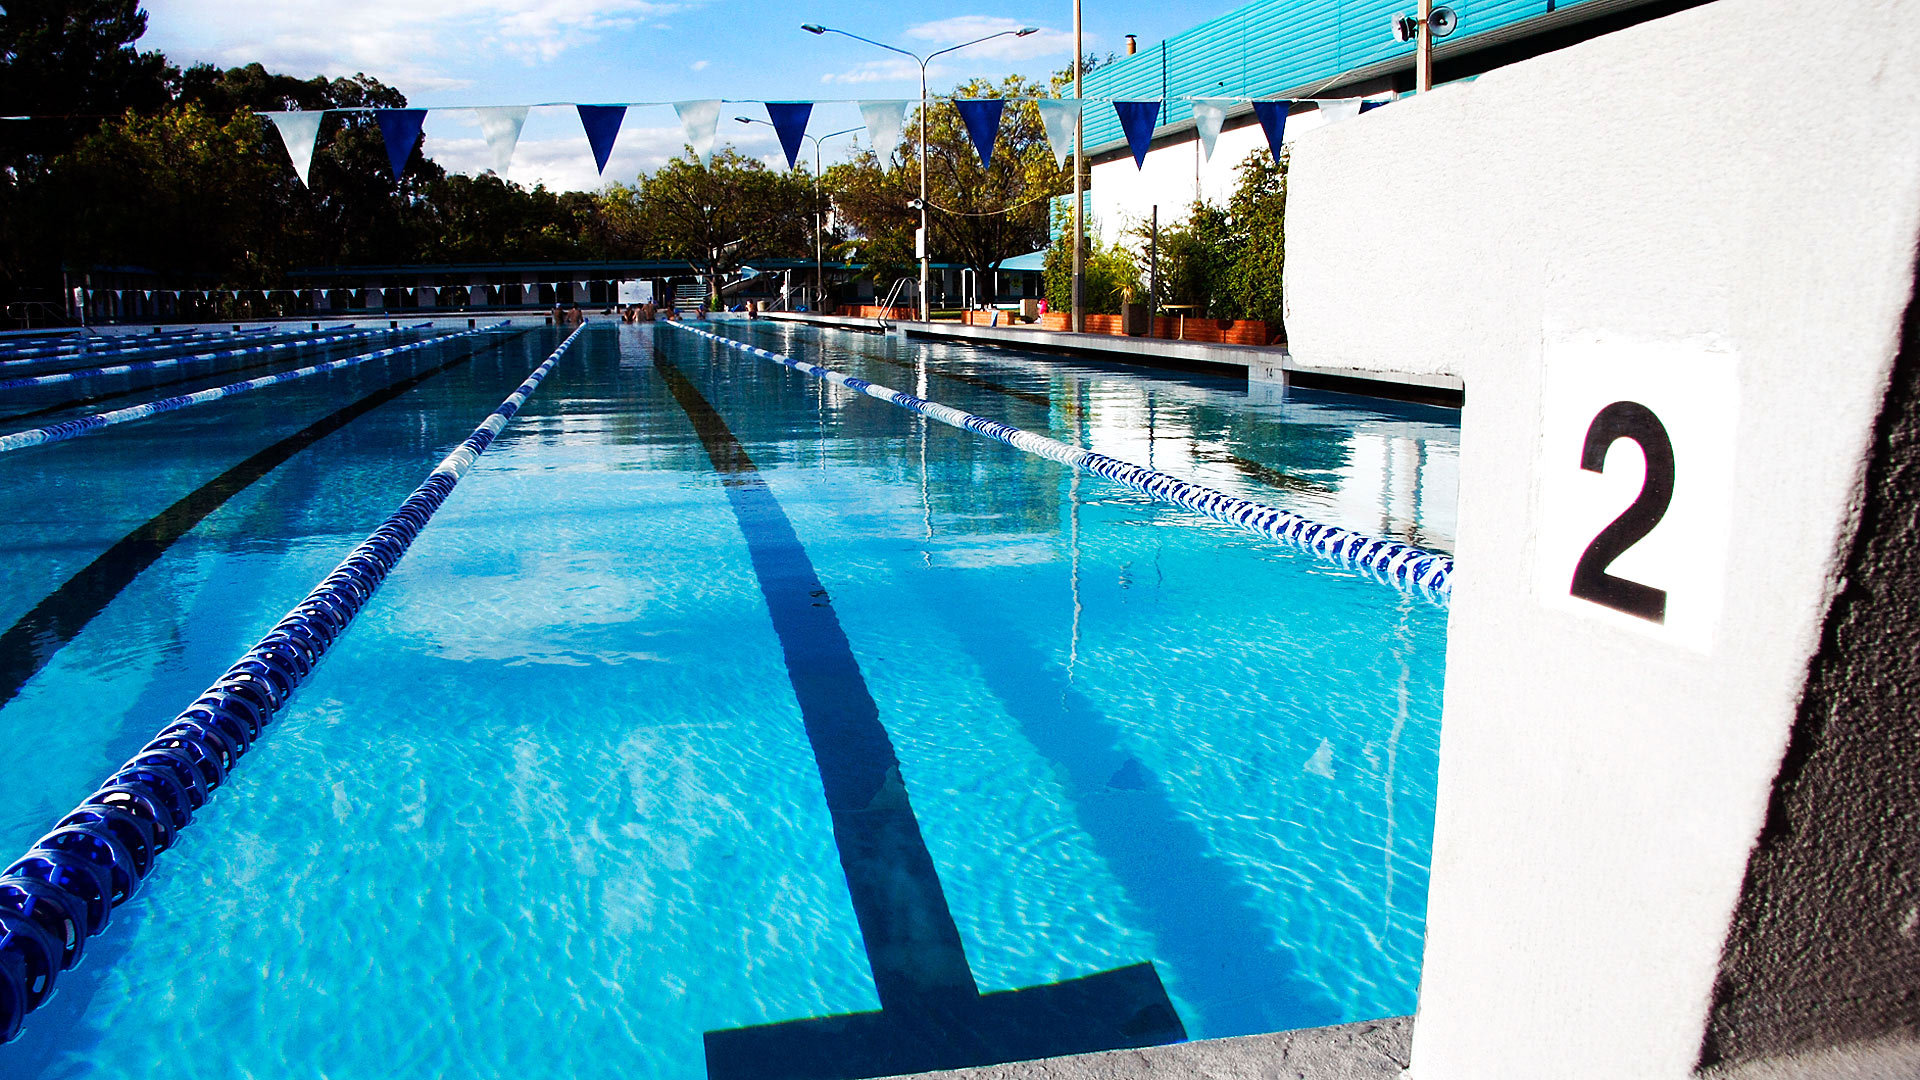 Canberra 39 s swimming pools canberra for Opening swimming pool after winter